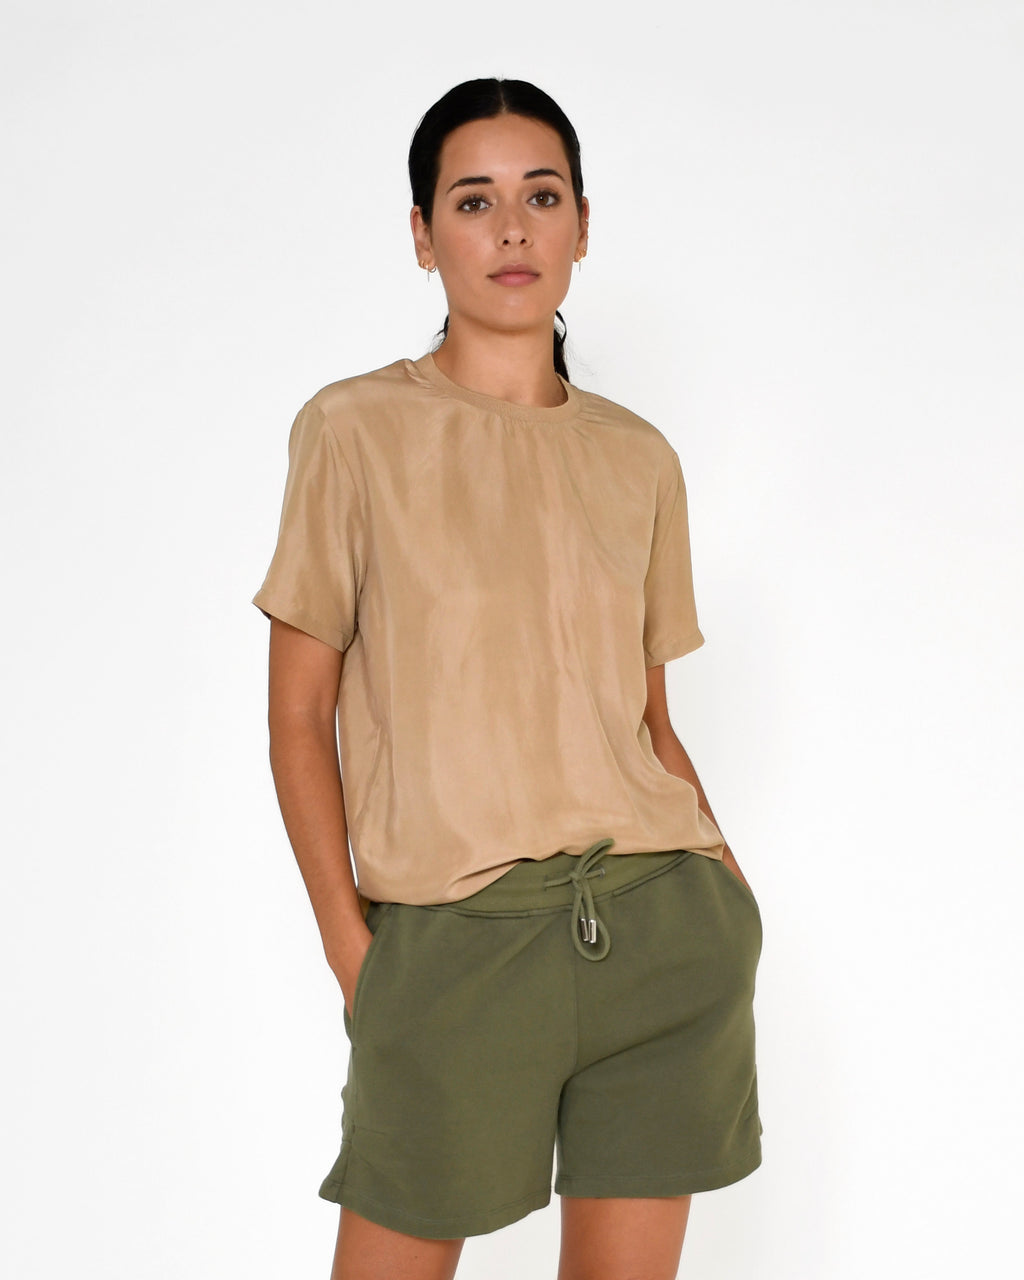 CT18899 - SOLID SILK T-SHIRT - tops - shirts - Our 100% silk t-shirt is the perfect elevated basic. Designed in a classic crew neck silhouette. Add 1 line break Stylist Tip: Pair with our silk joggers for a cool yet casual look.